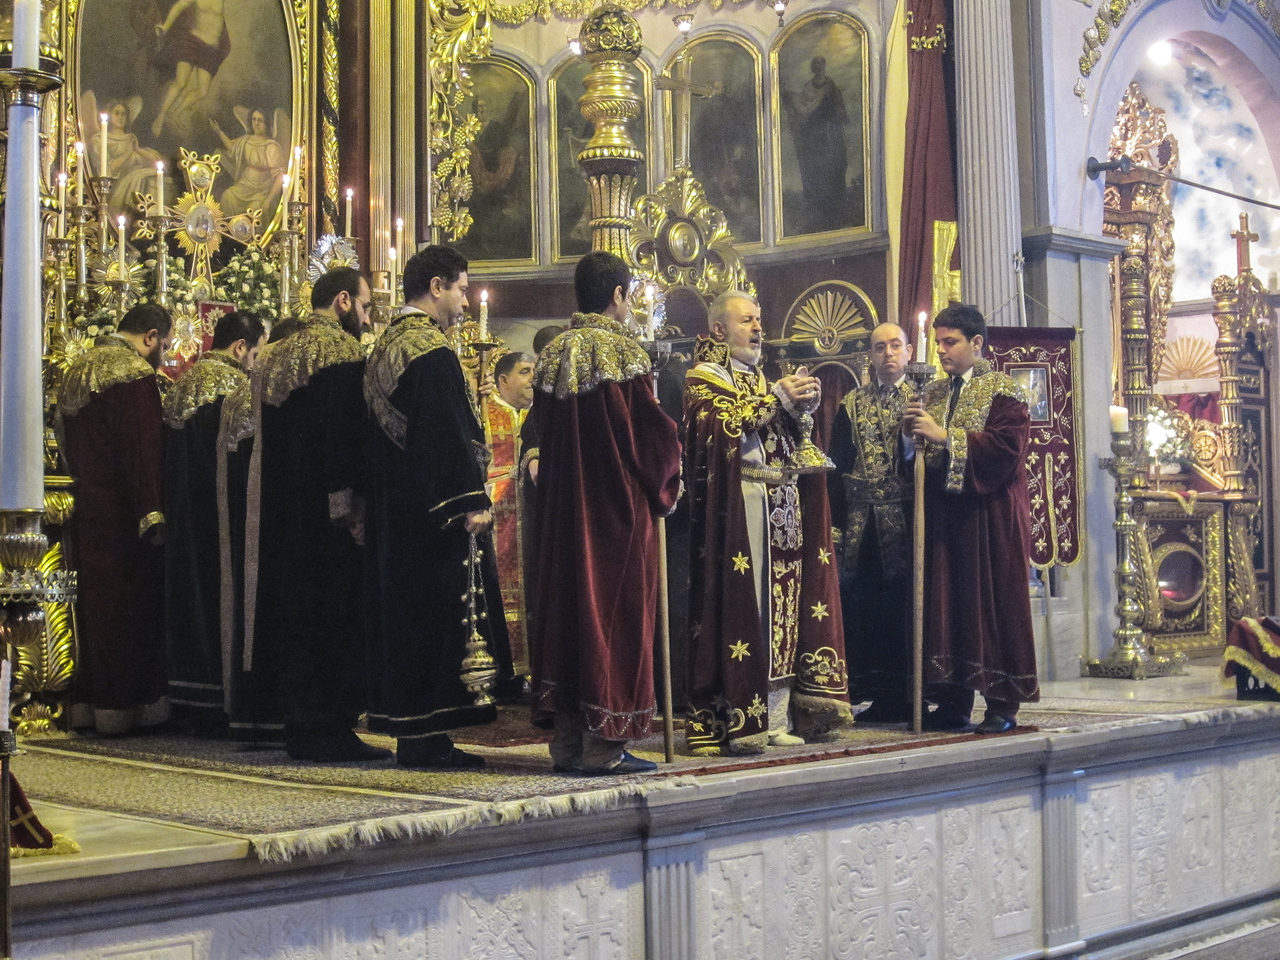 Easter Service at Armenian Patriarchal Church (Kumkapı, 2013)